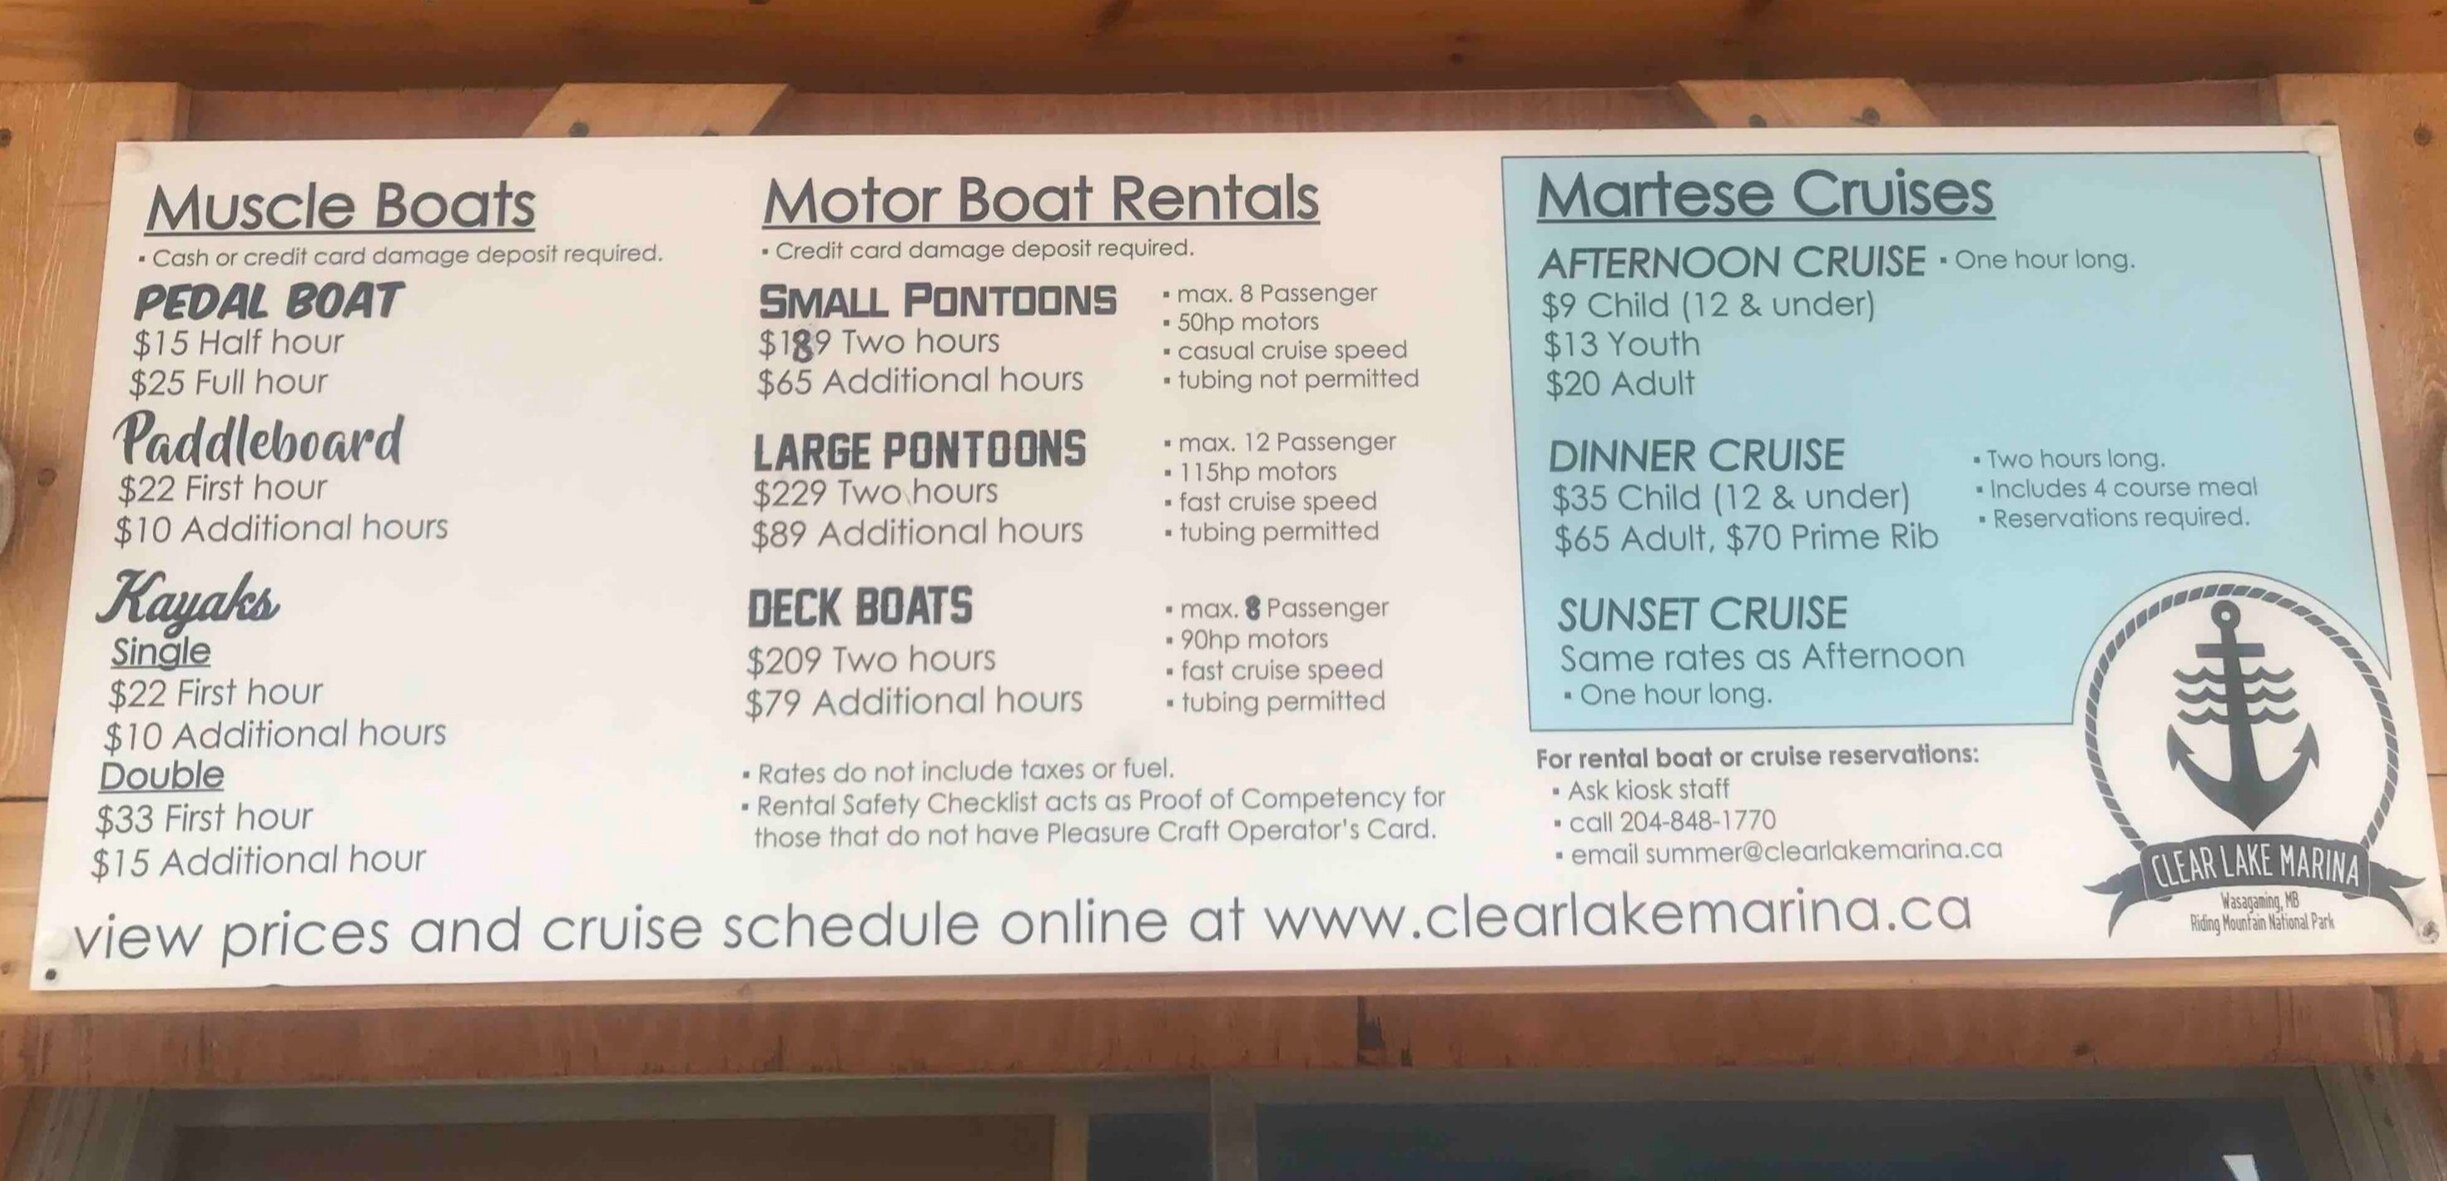 Costs of renting a boat at Clear Lake